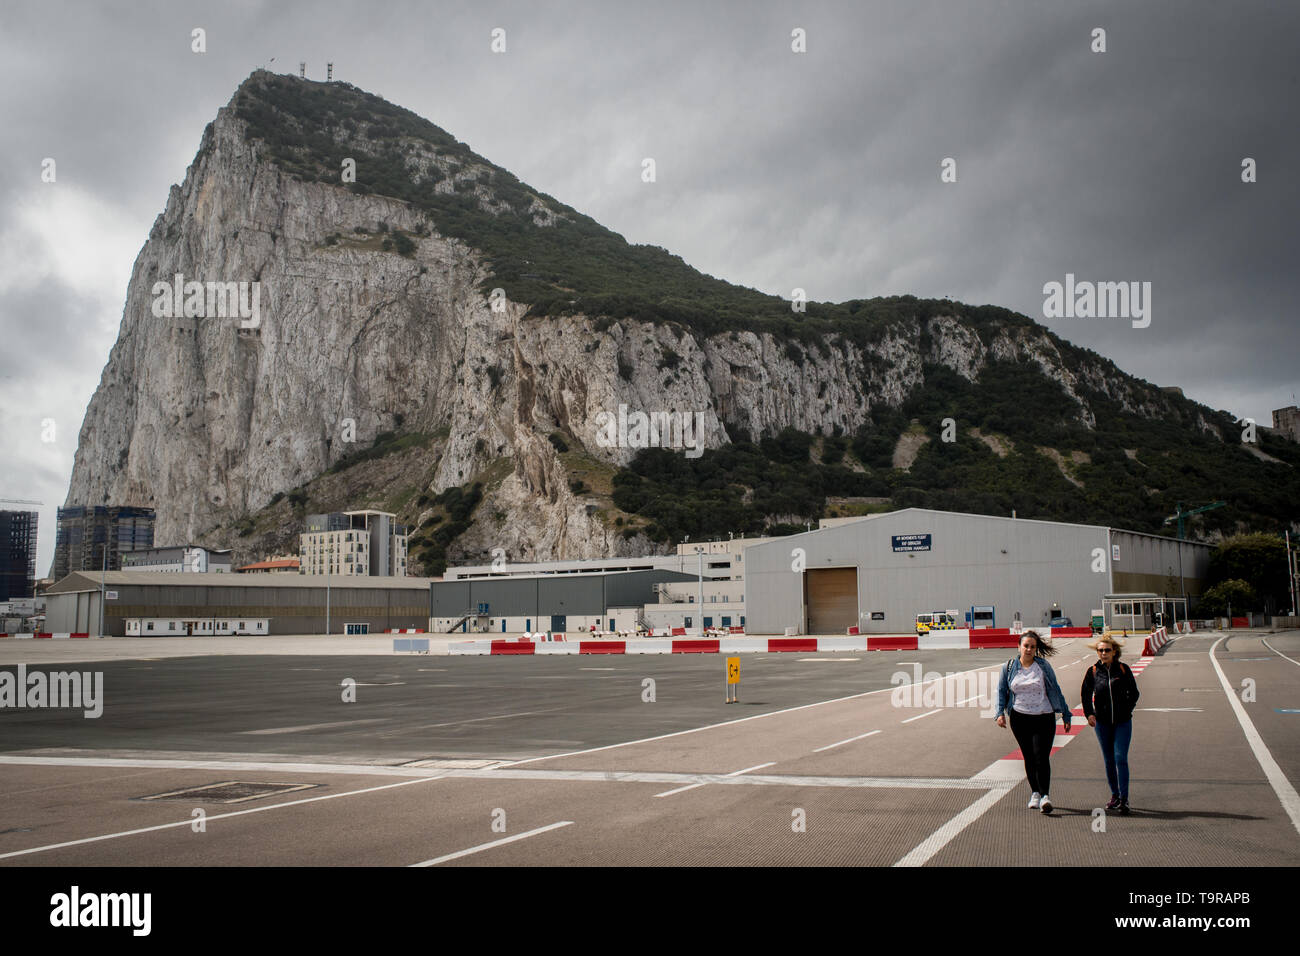 Pedestrians crossing  the asphalt at Gibraltar international airport  (British overseas territory)  near the border with Spain. - Stock Image